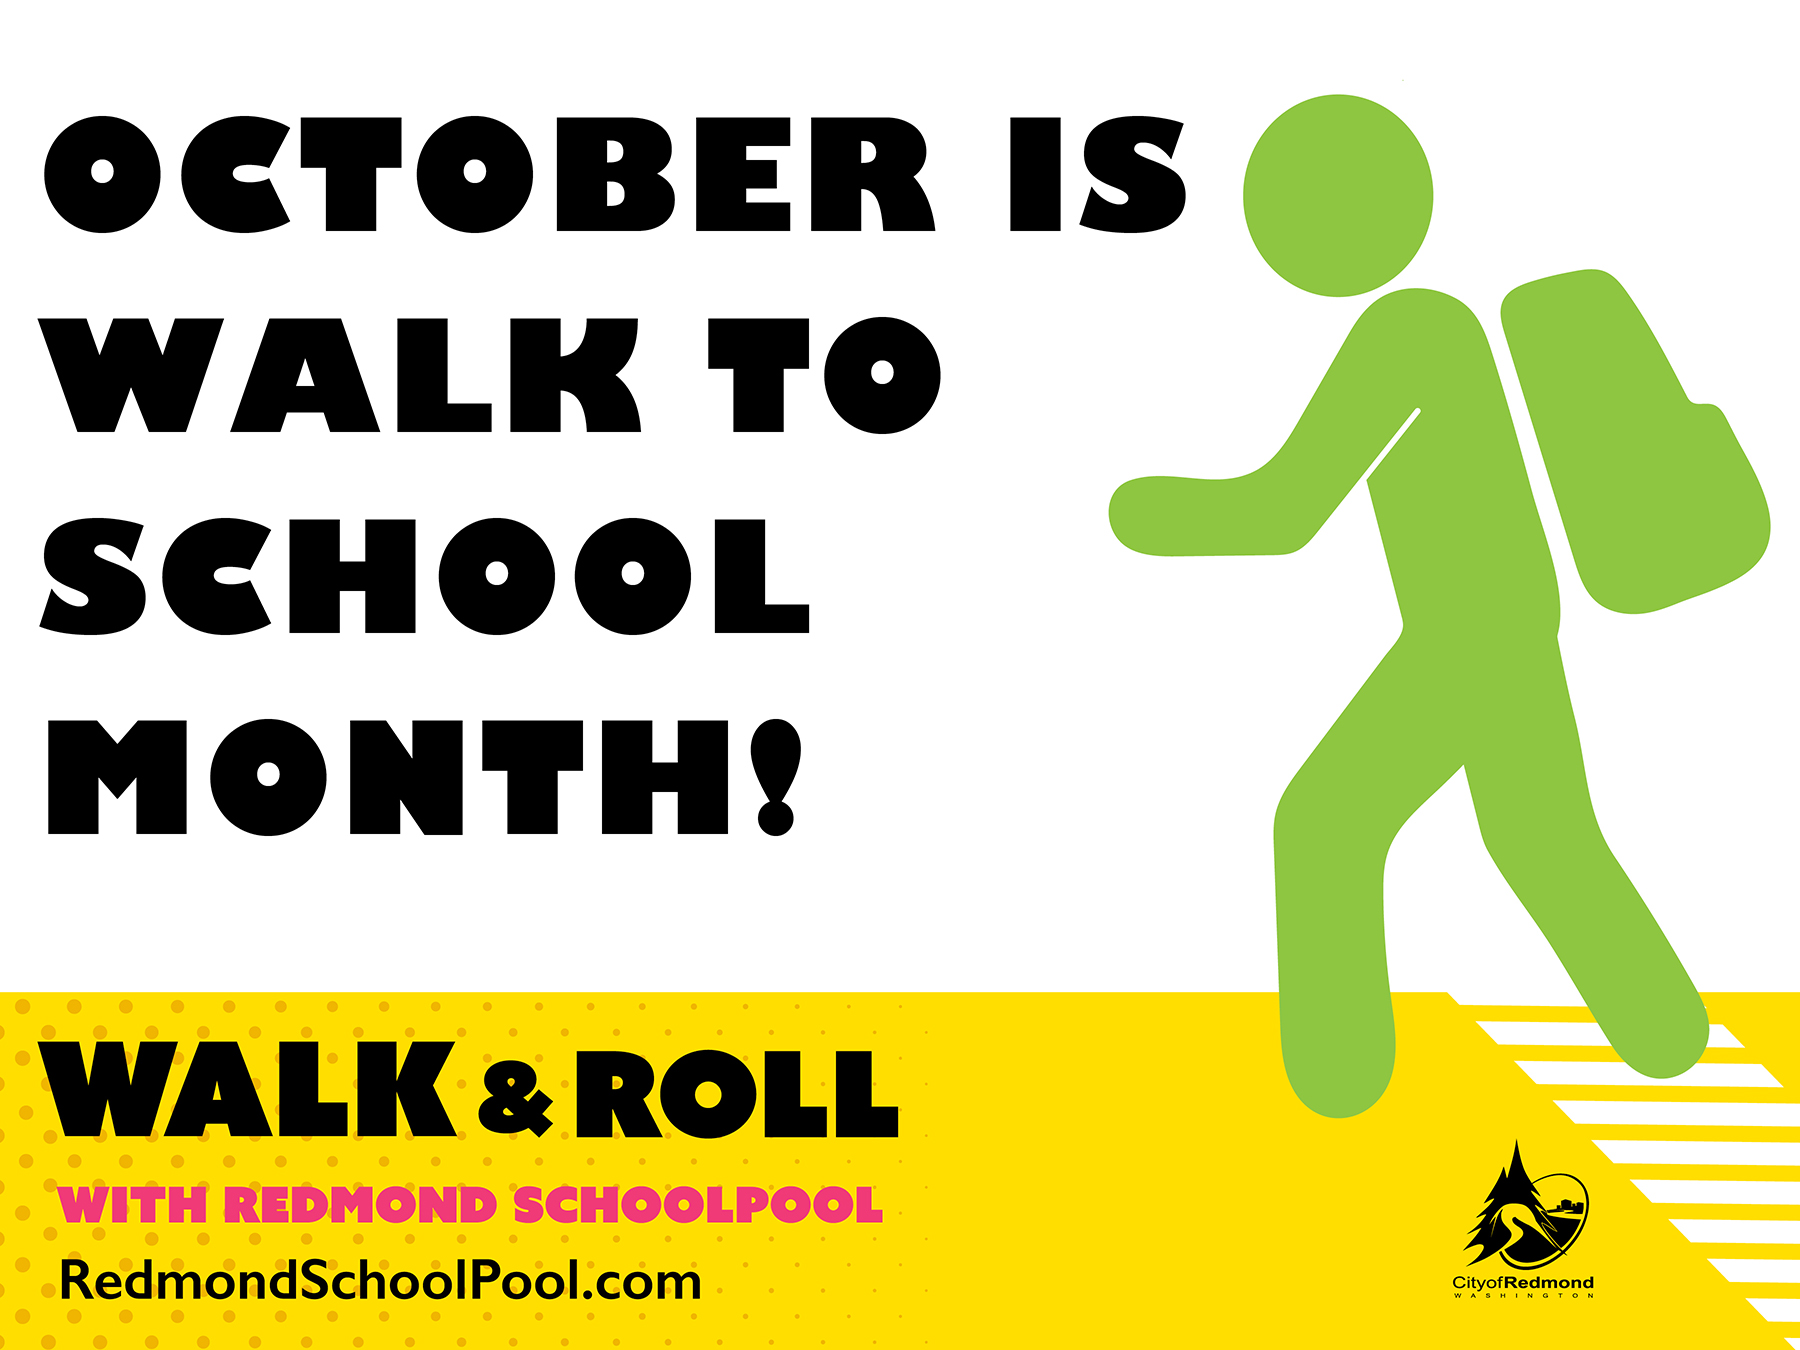 October is Walk to School Month